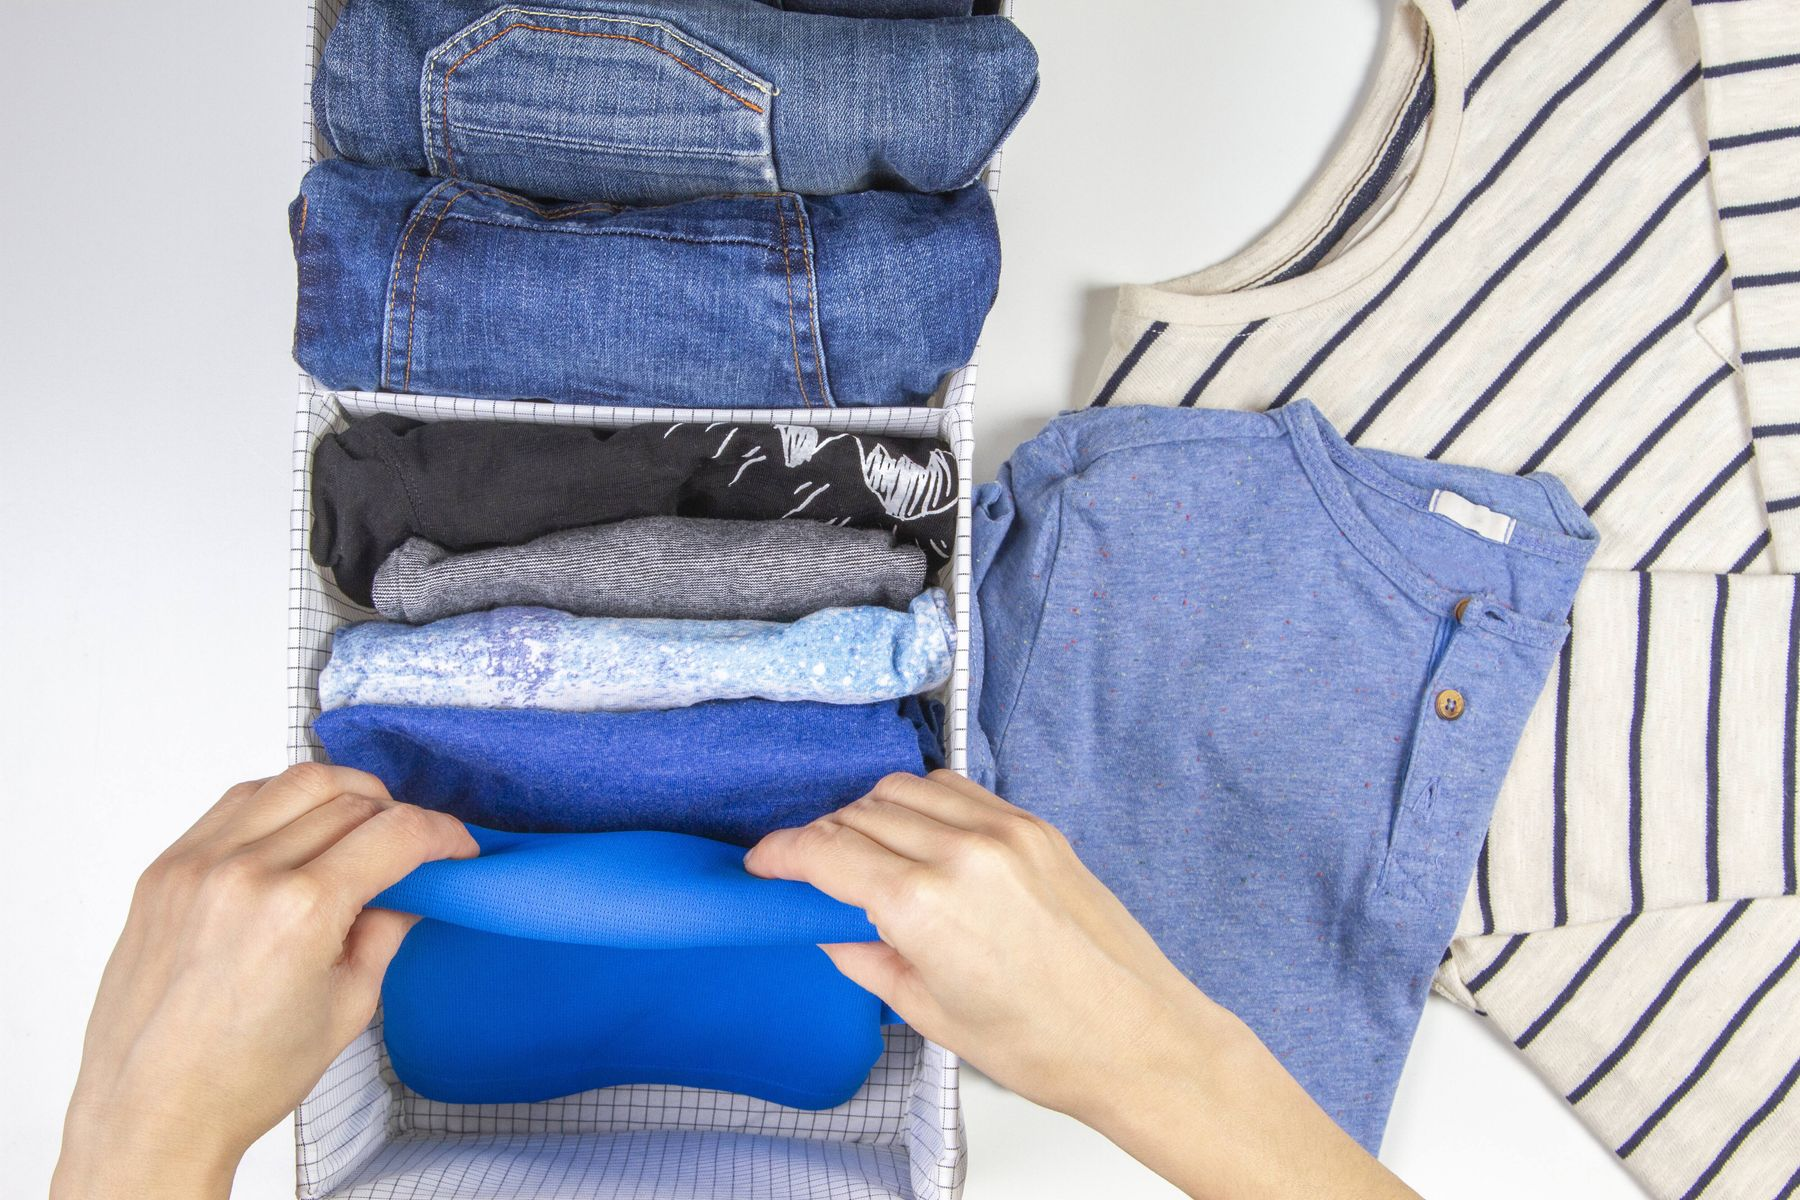 Marie Kondo folding method for clothes